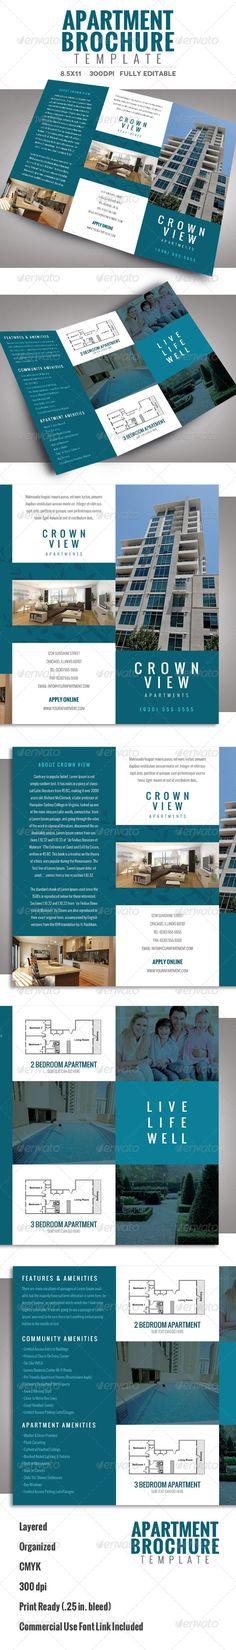 Apartment Brochure Design Stunning Decorating Design